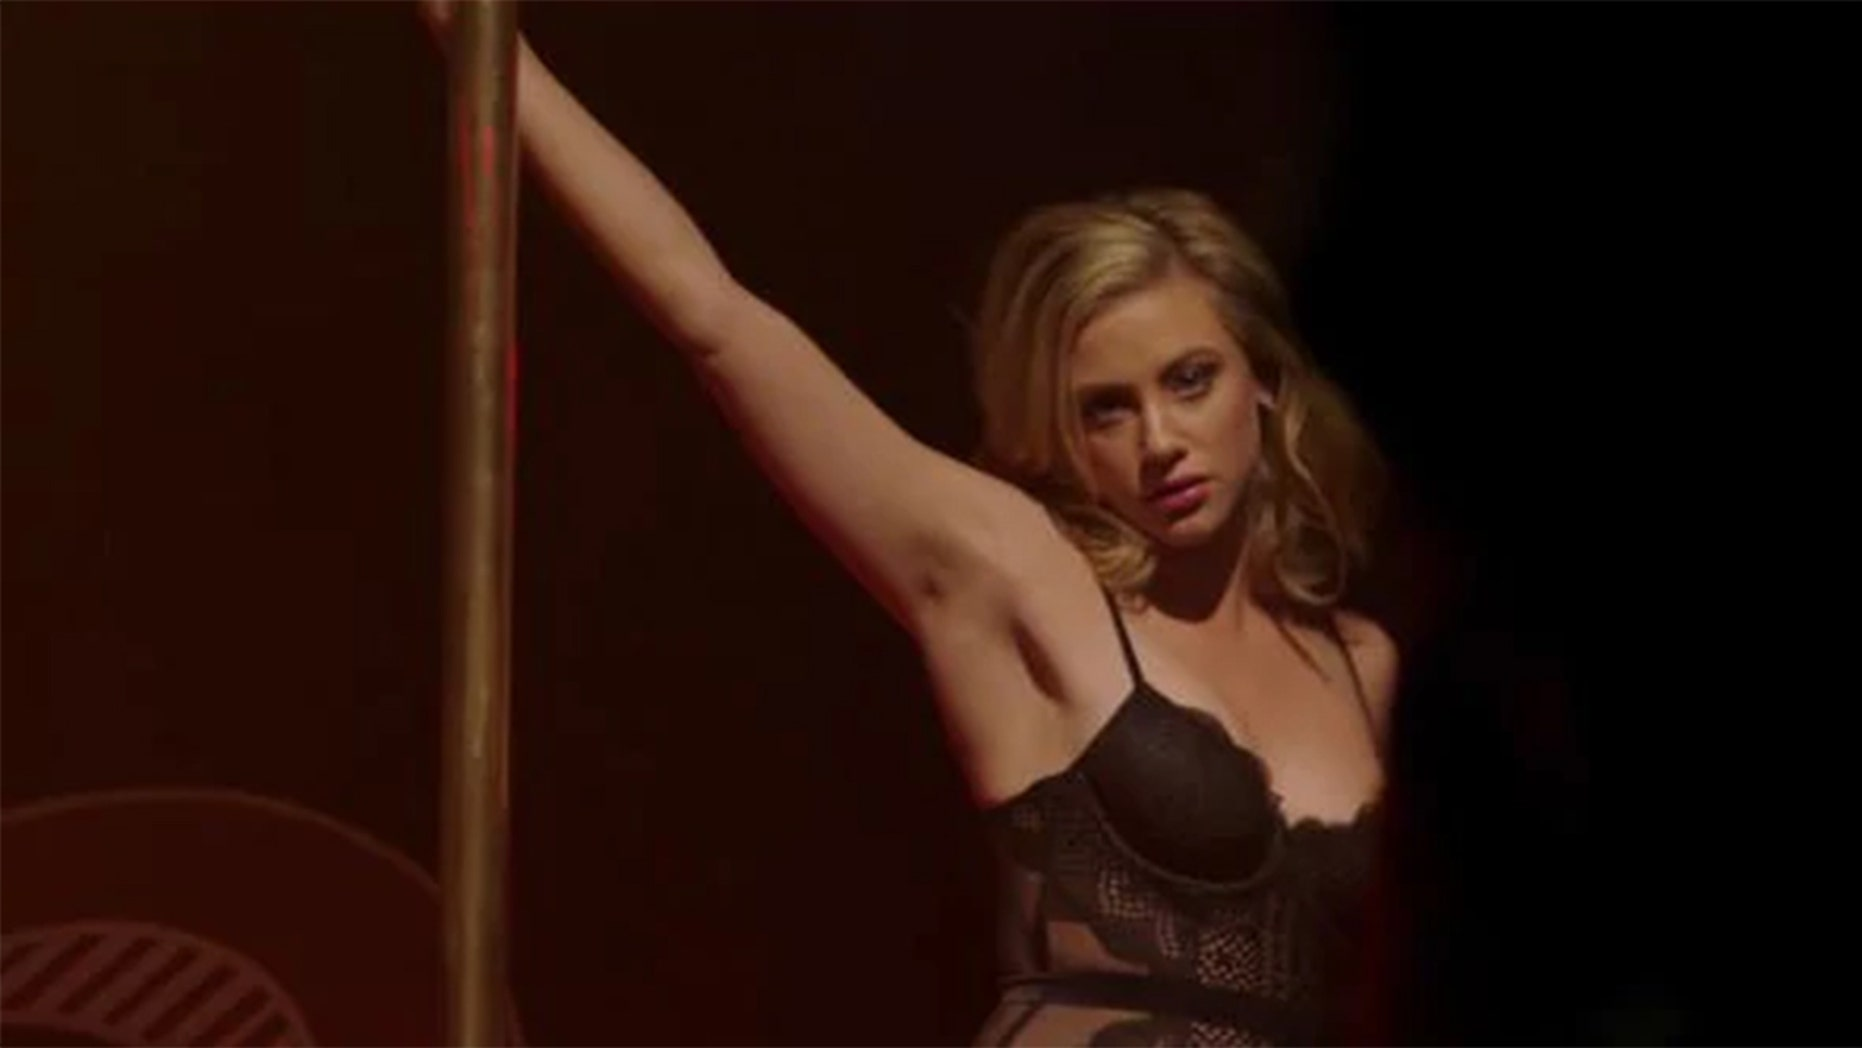 """Lili Reinhart as her character Betty Cooper, in the show """"Riverdale,"""" talks about her controversial striptease scene in the show."""